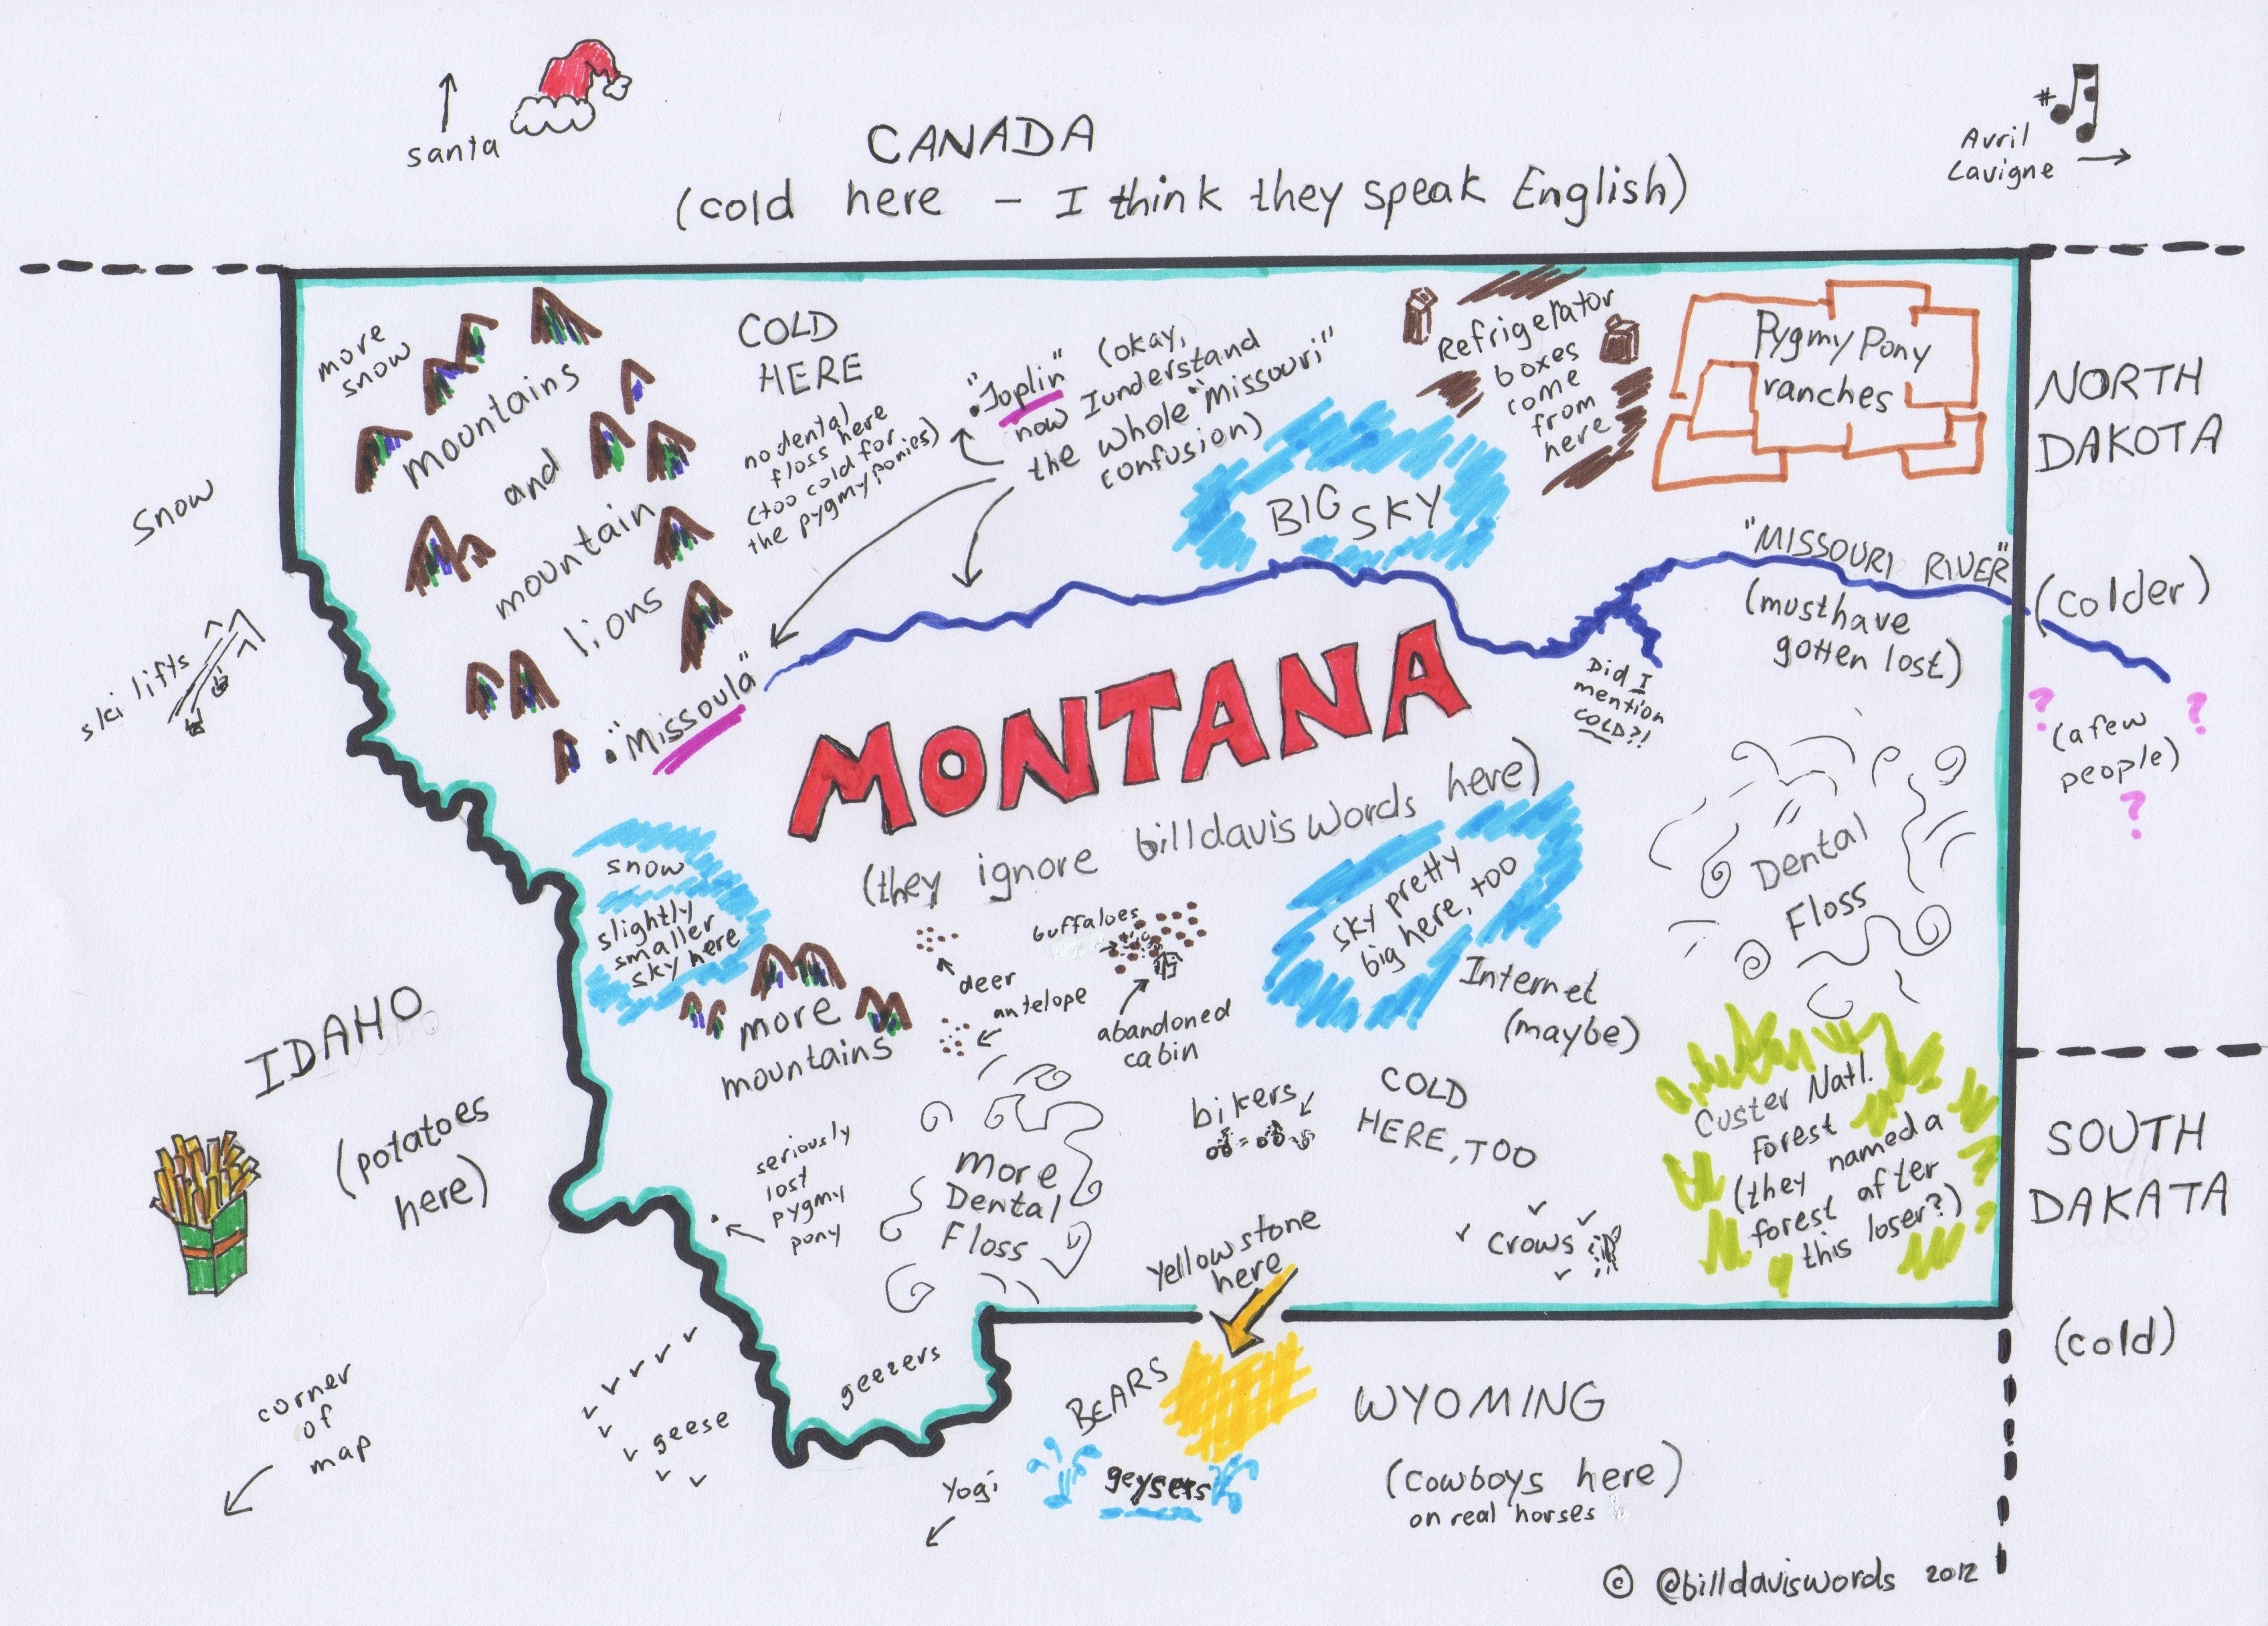 Montana They Ignore Bill Davis Words – Montana Travel Map